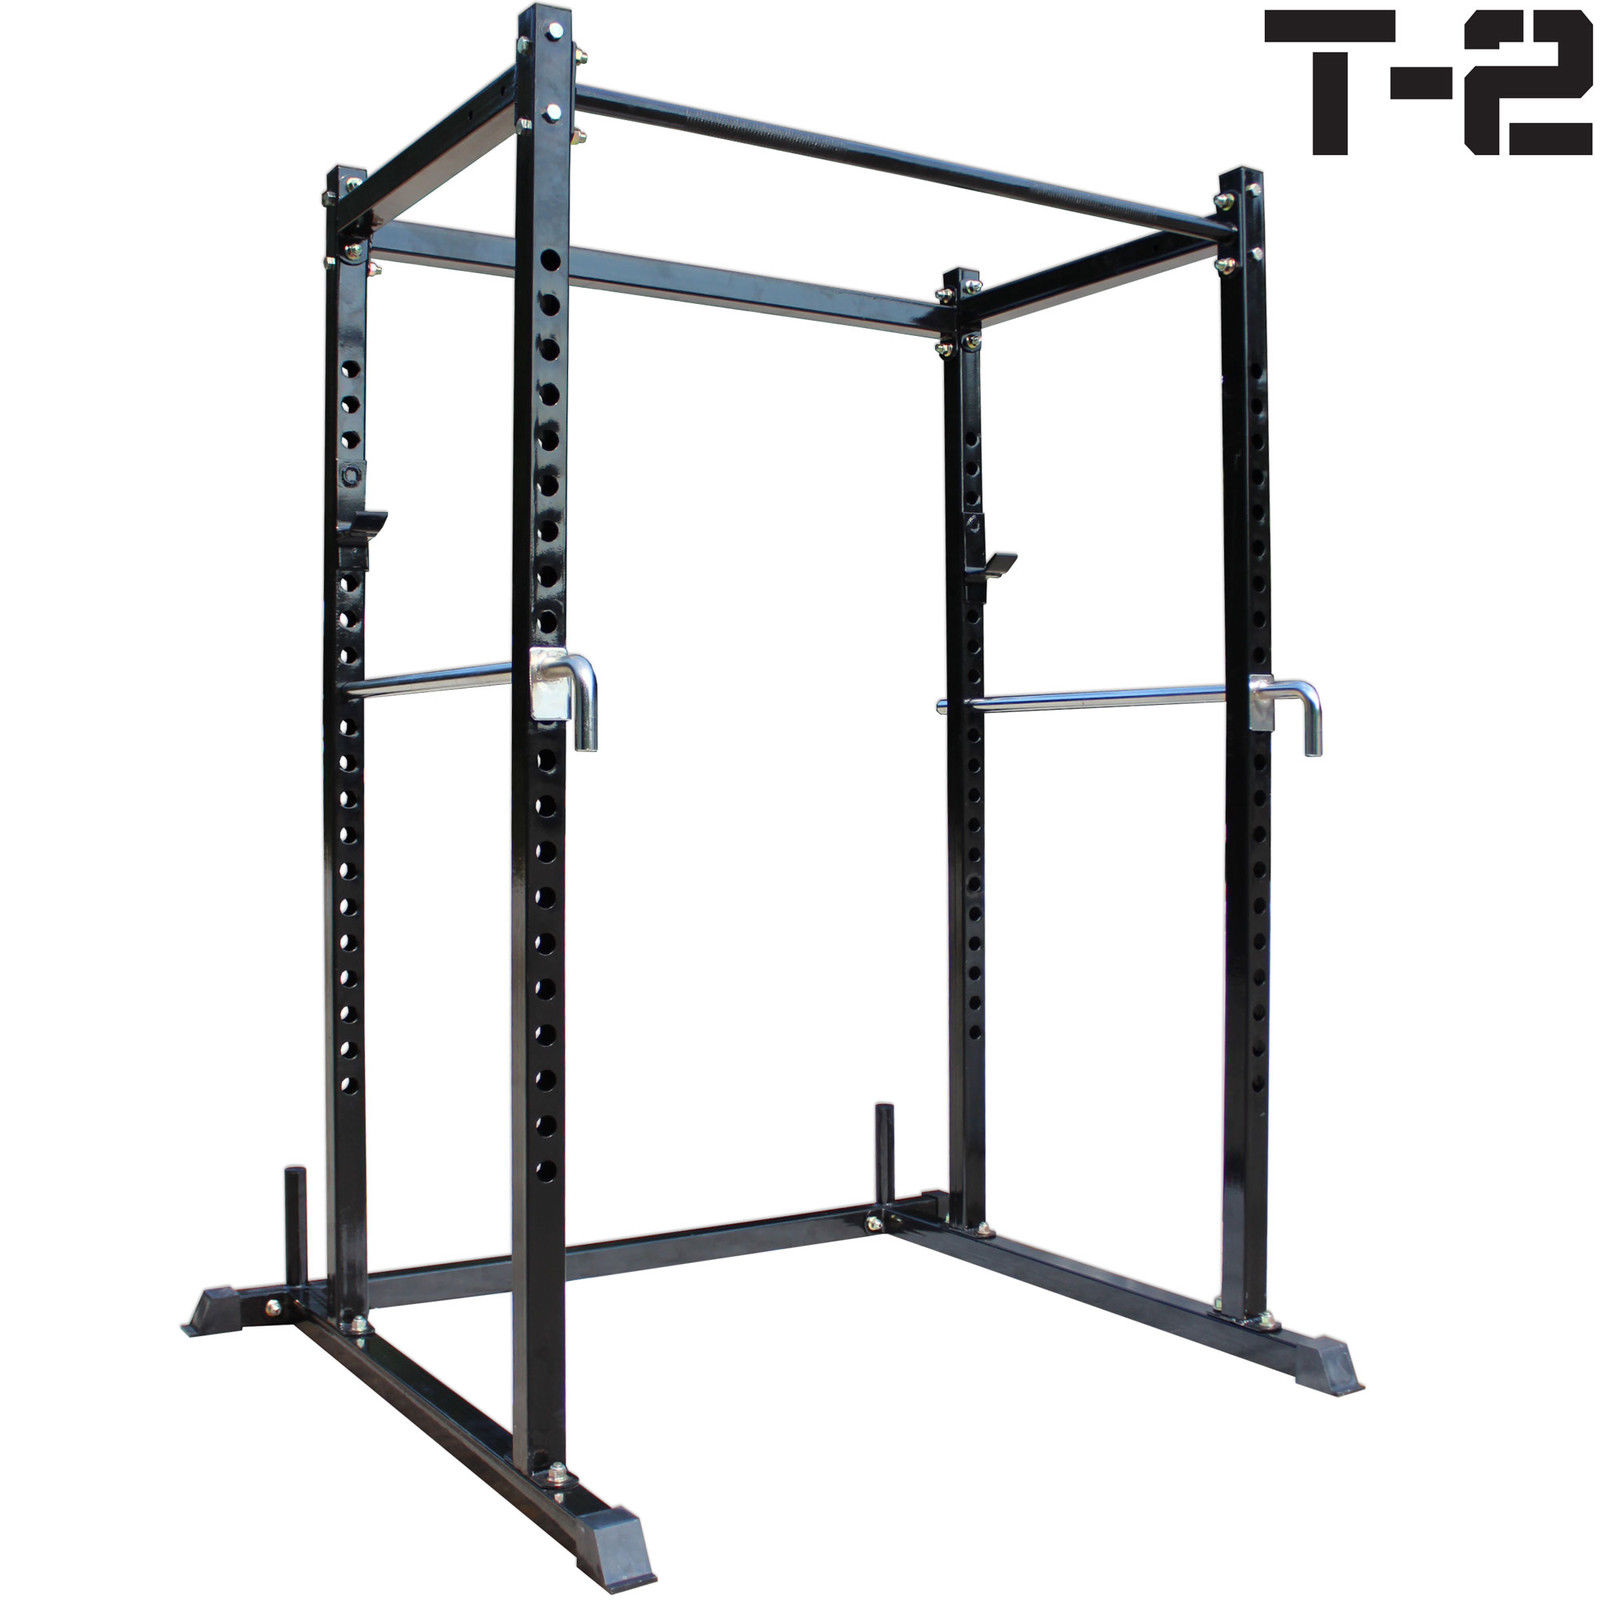 Titan T 2 Series Short Power Rack Squat Deadlift Cage Bench Cross Fit Pull Up Work Out Wear